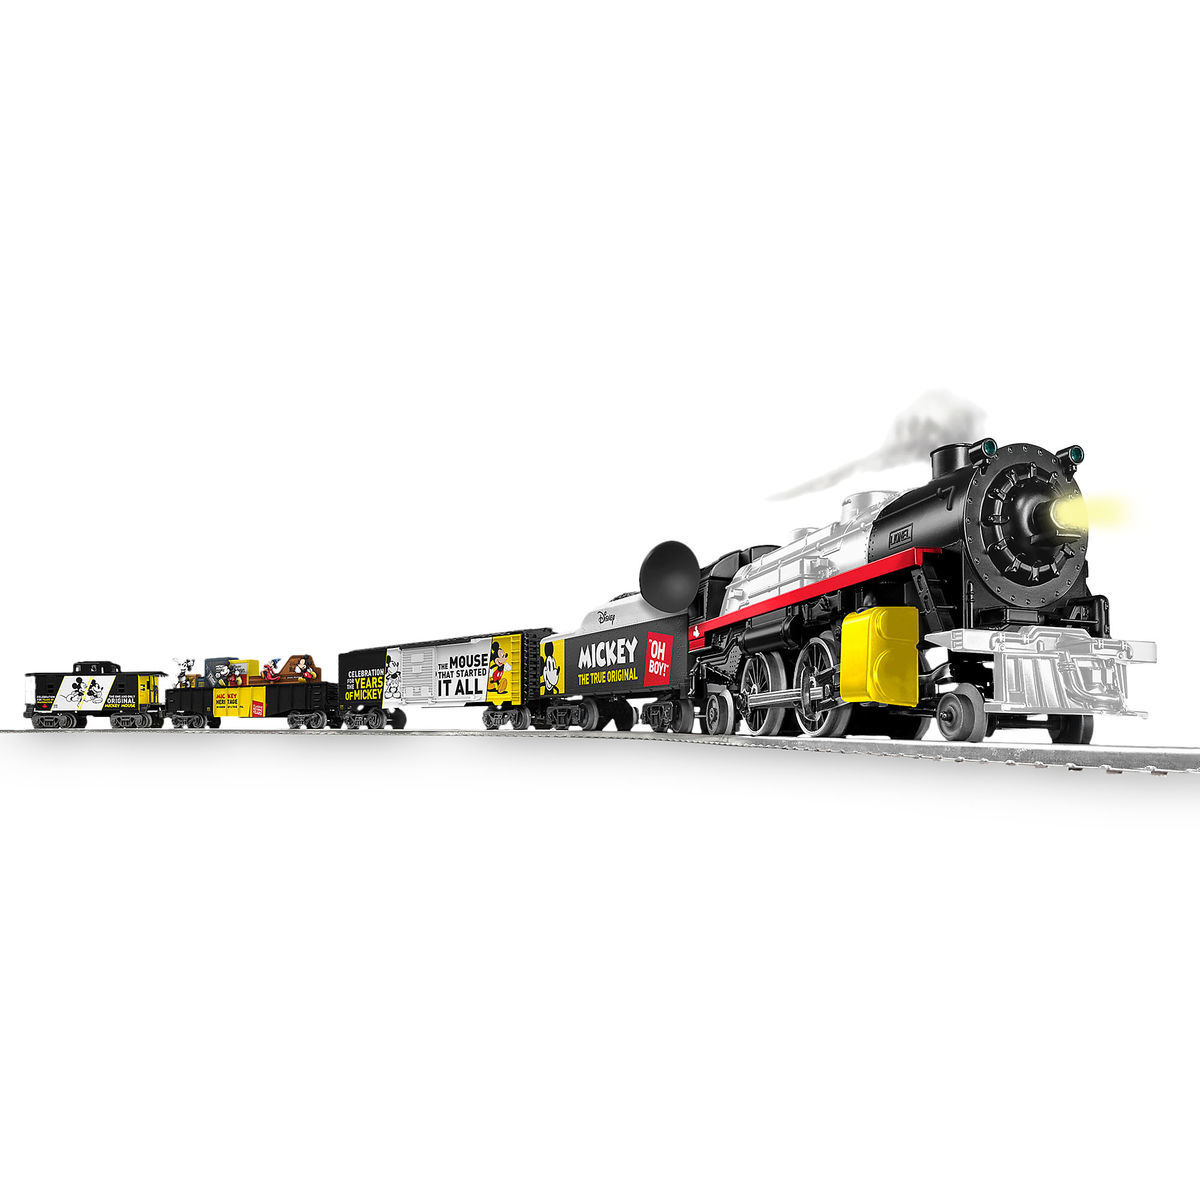 Mickey Mouse 90th Anniversary Ready-to-Run Train Set by Lionel ...